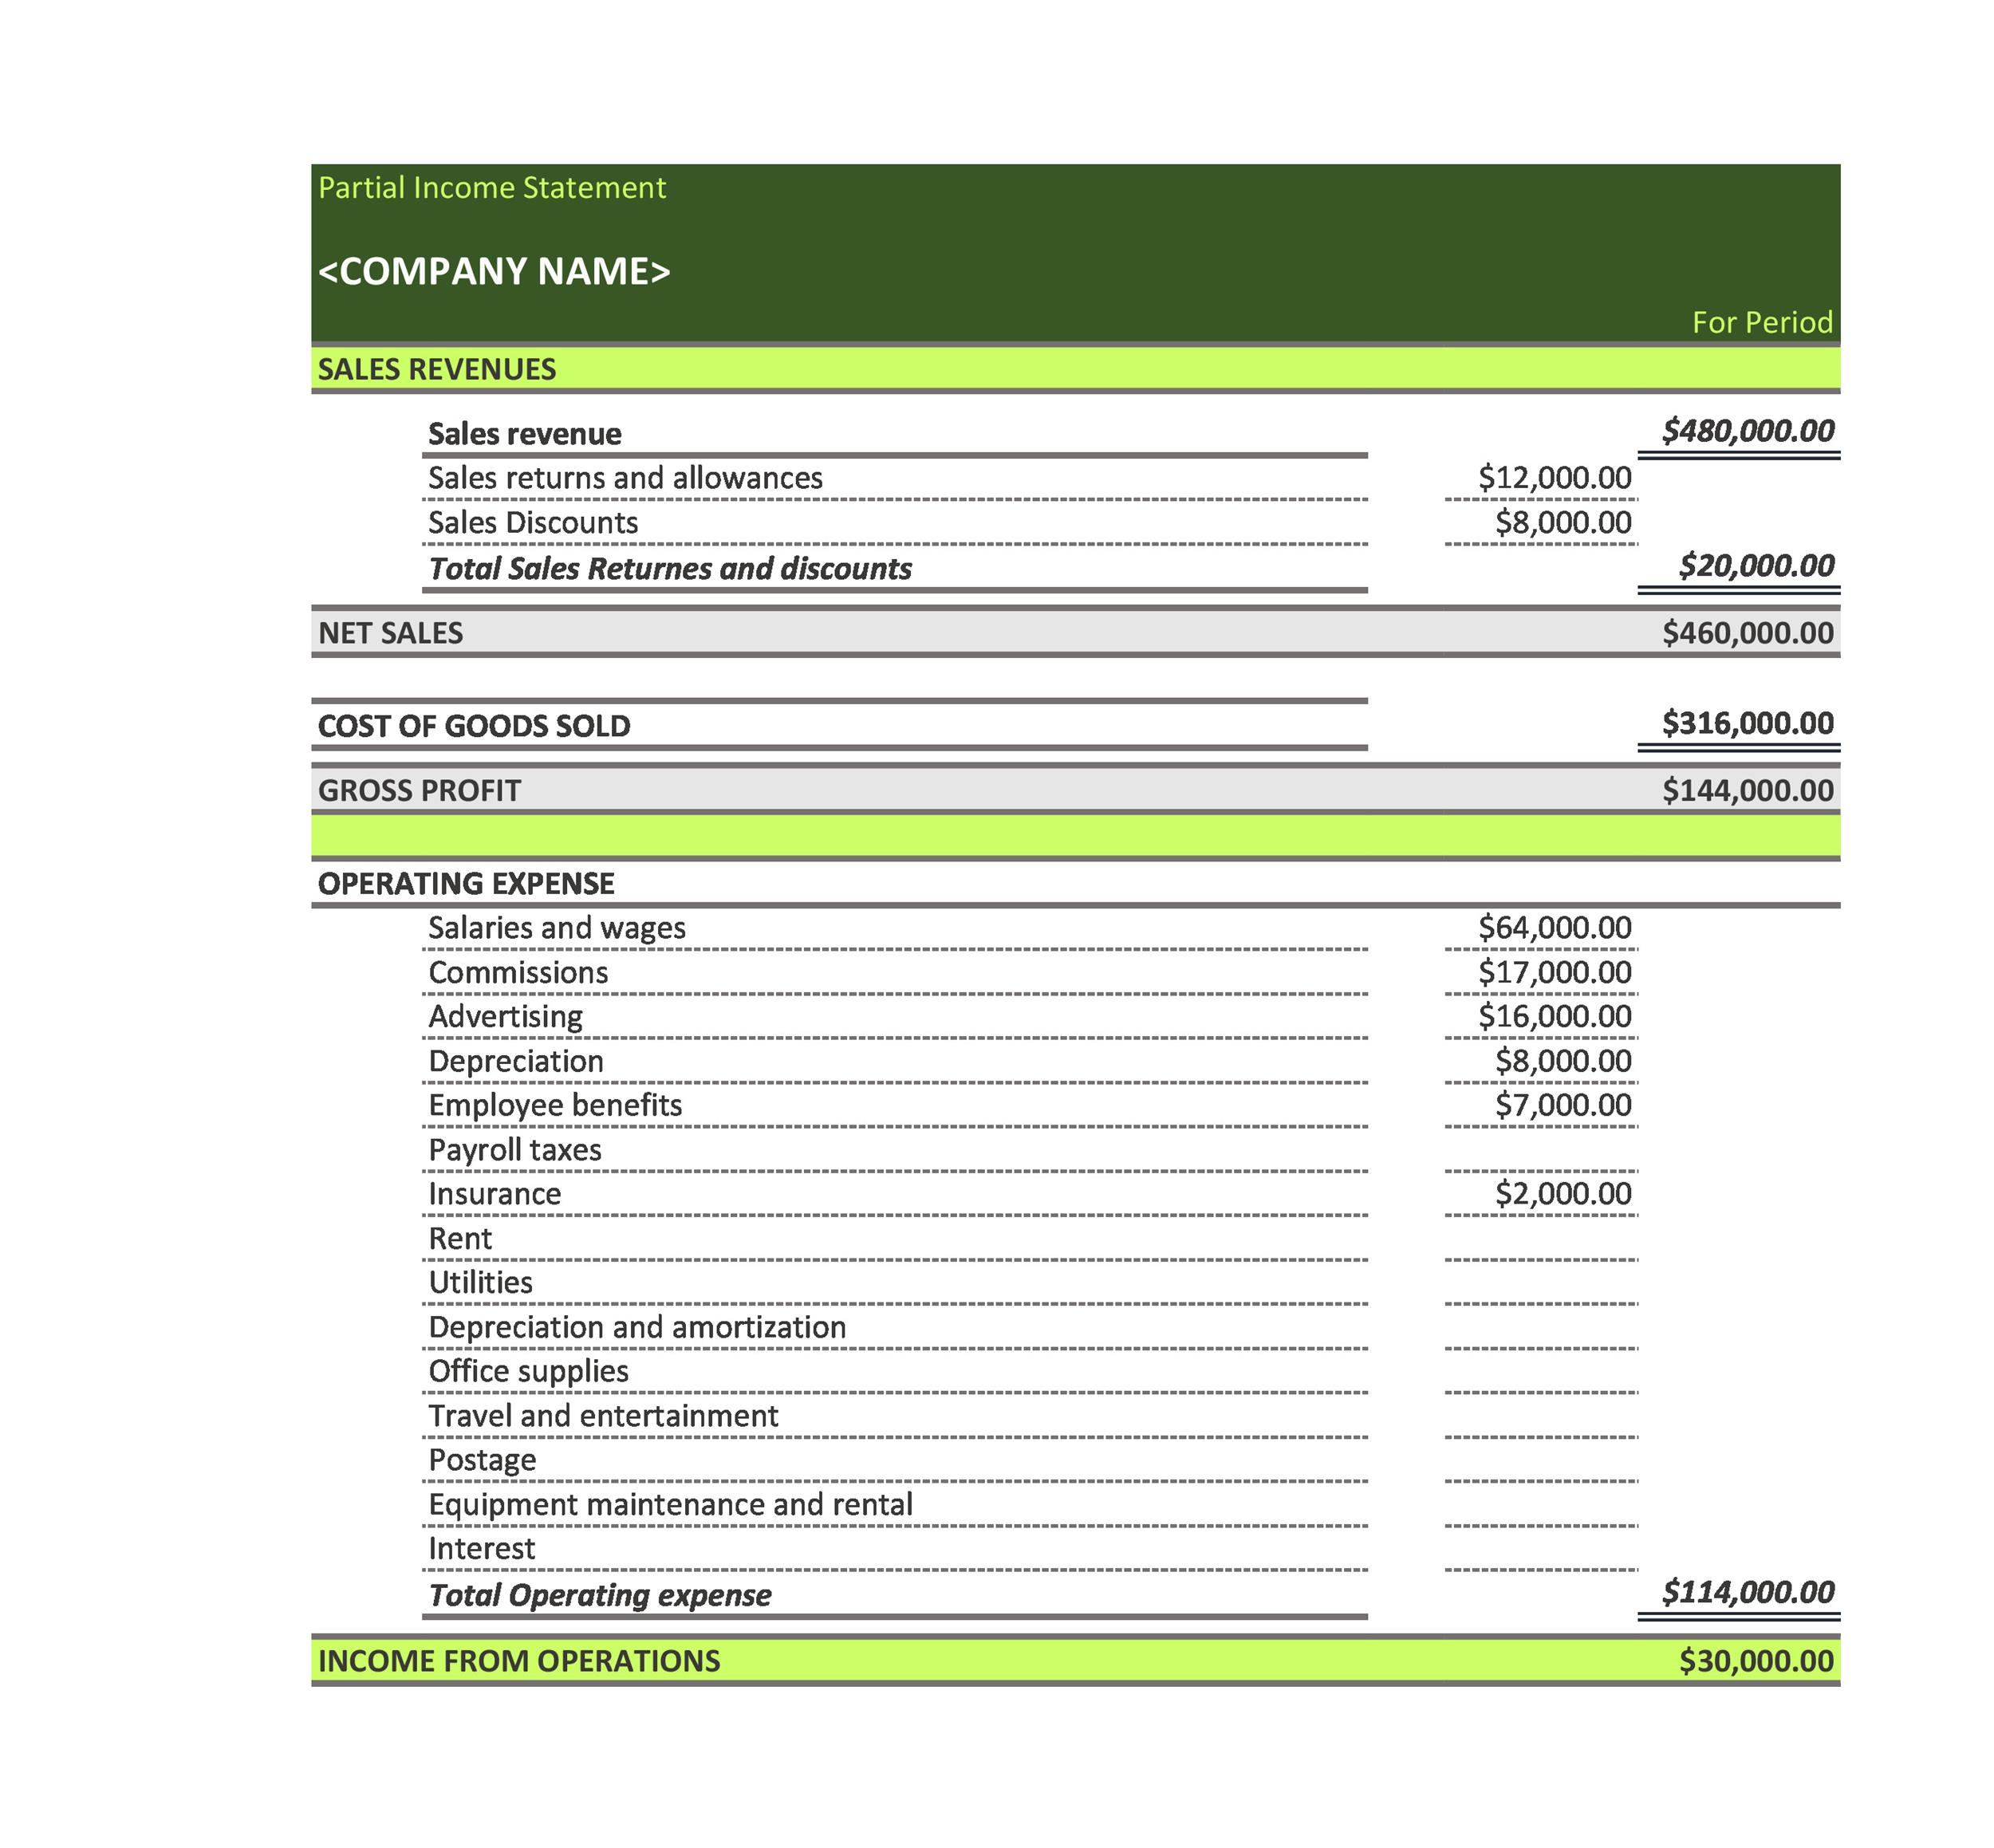 Free Partial Income Statement